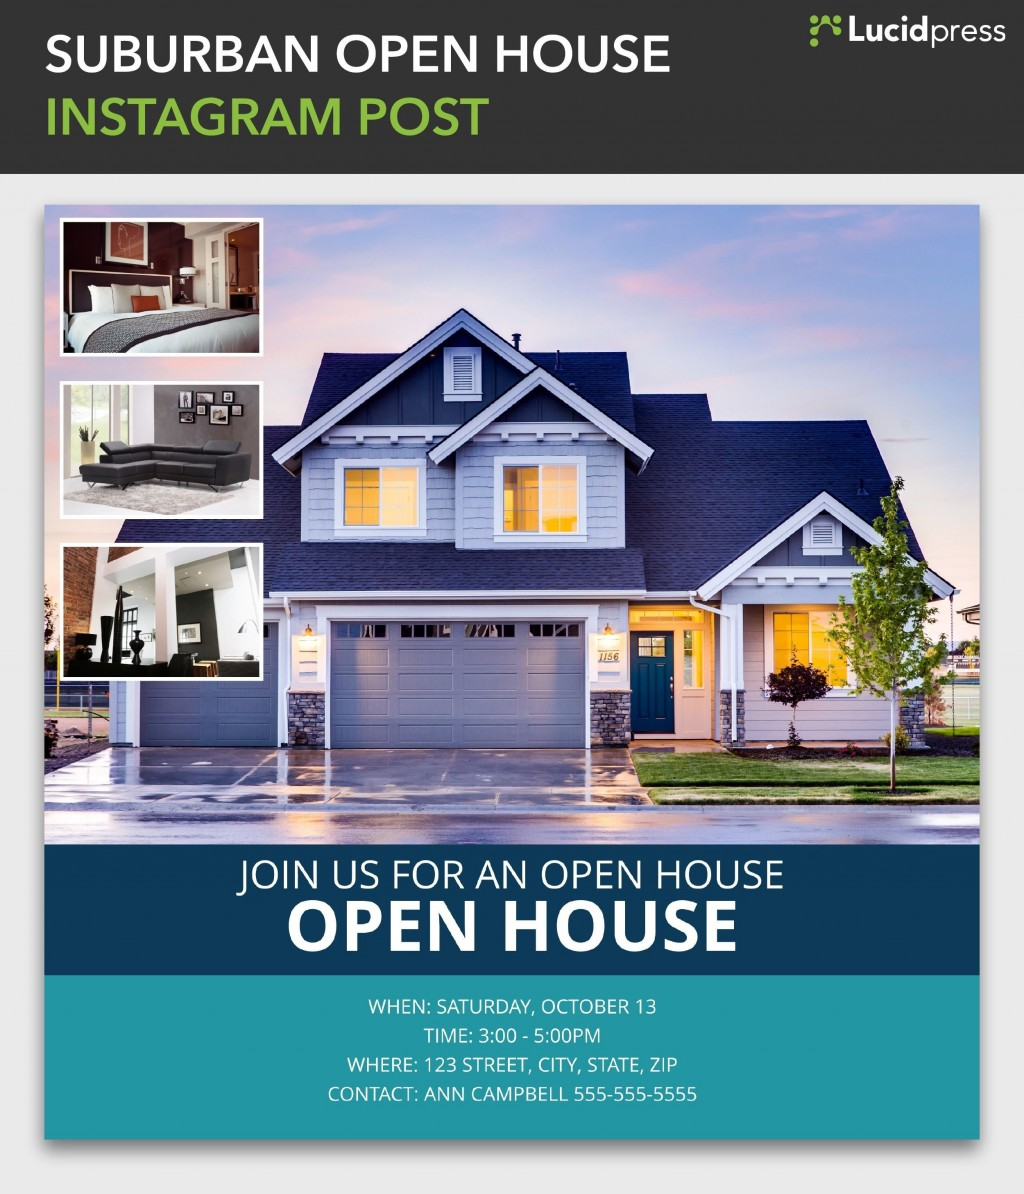 000 Dreaded Open House Flyer Template Word High Resolution  Free MicrosoftLarge